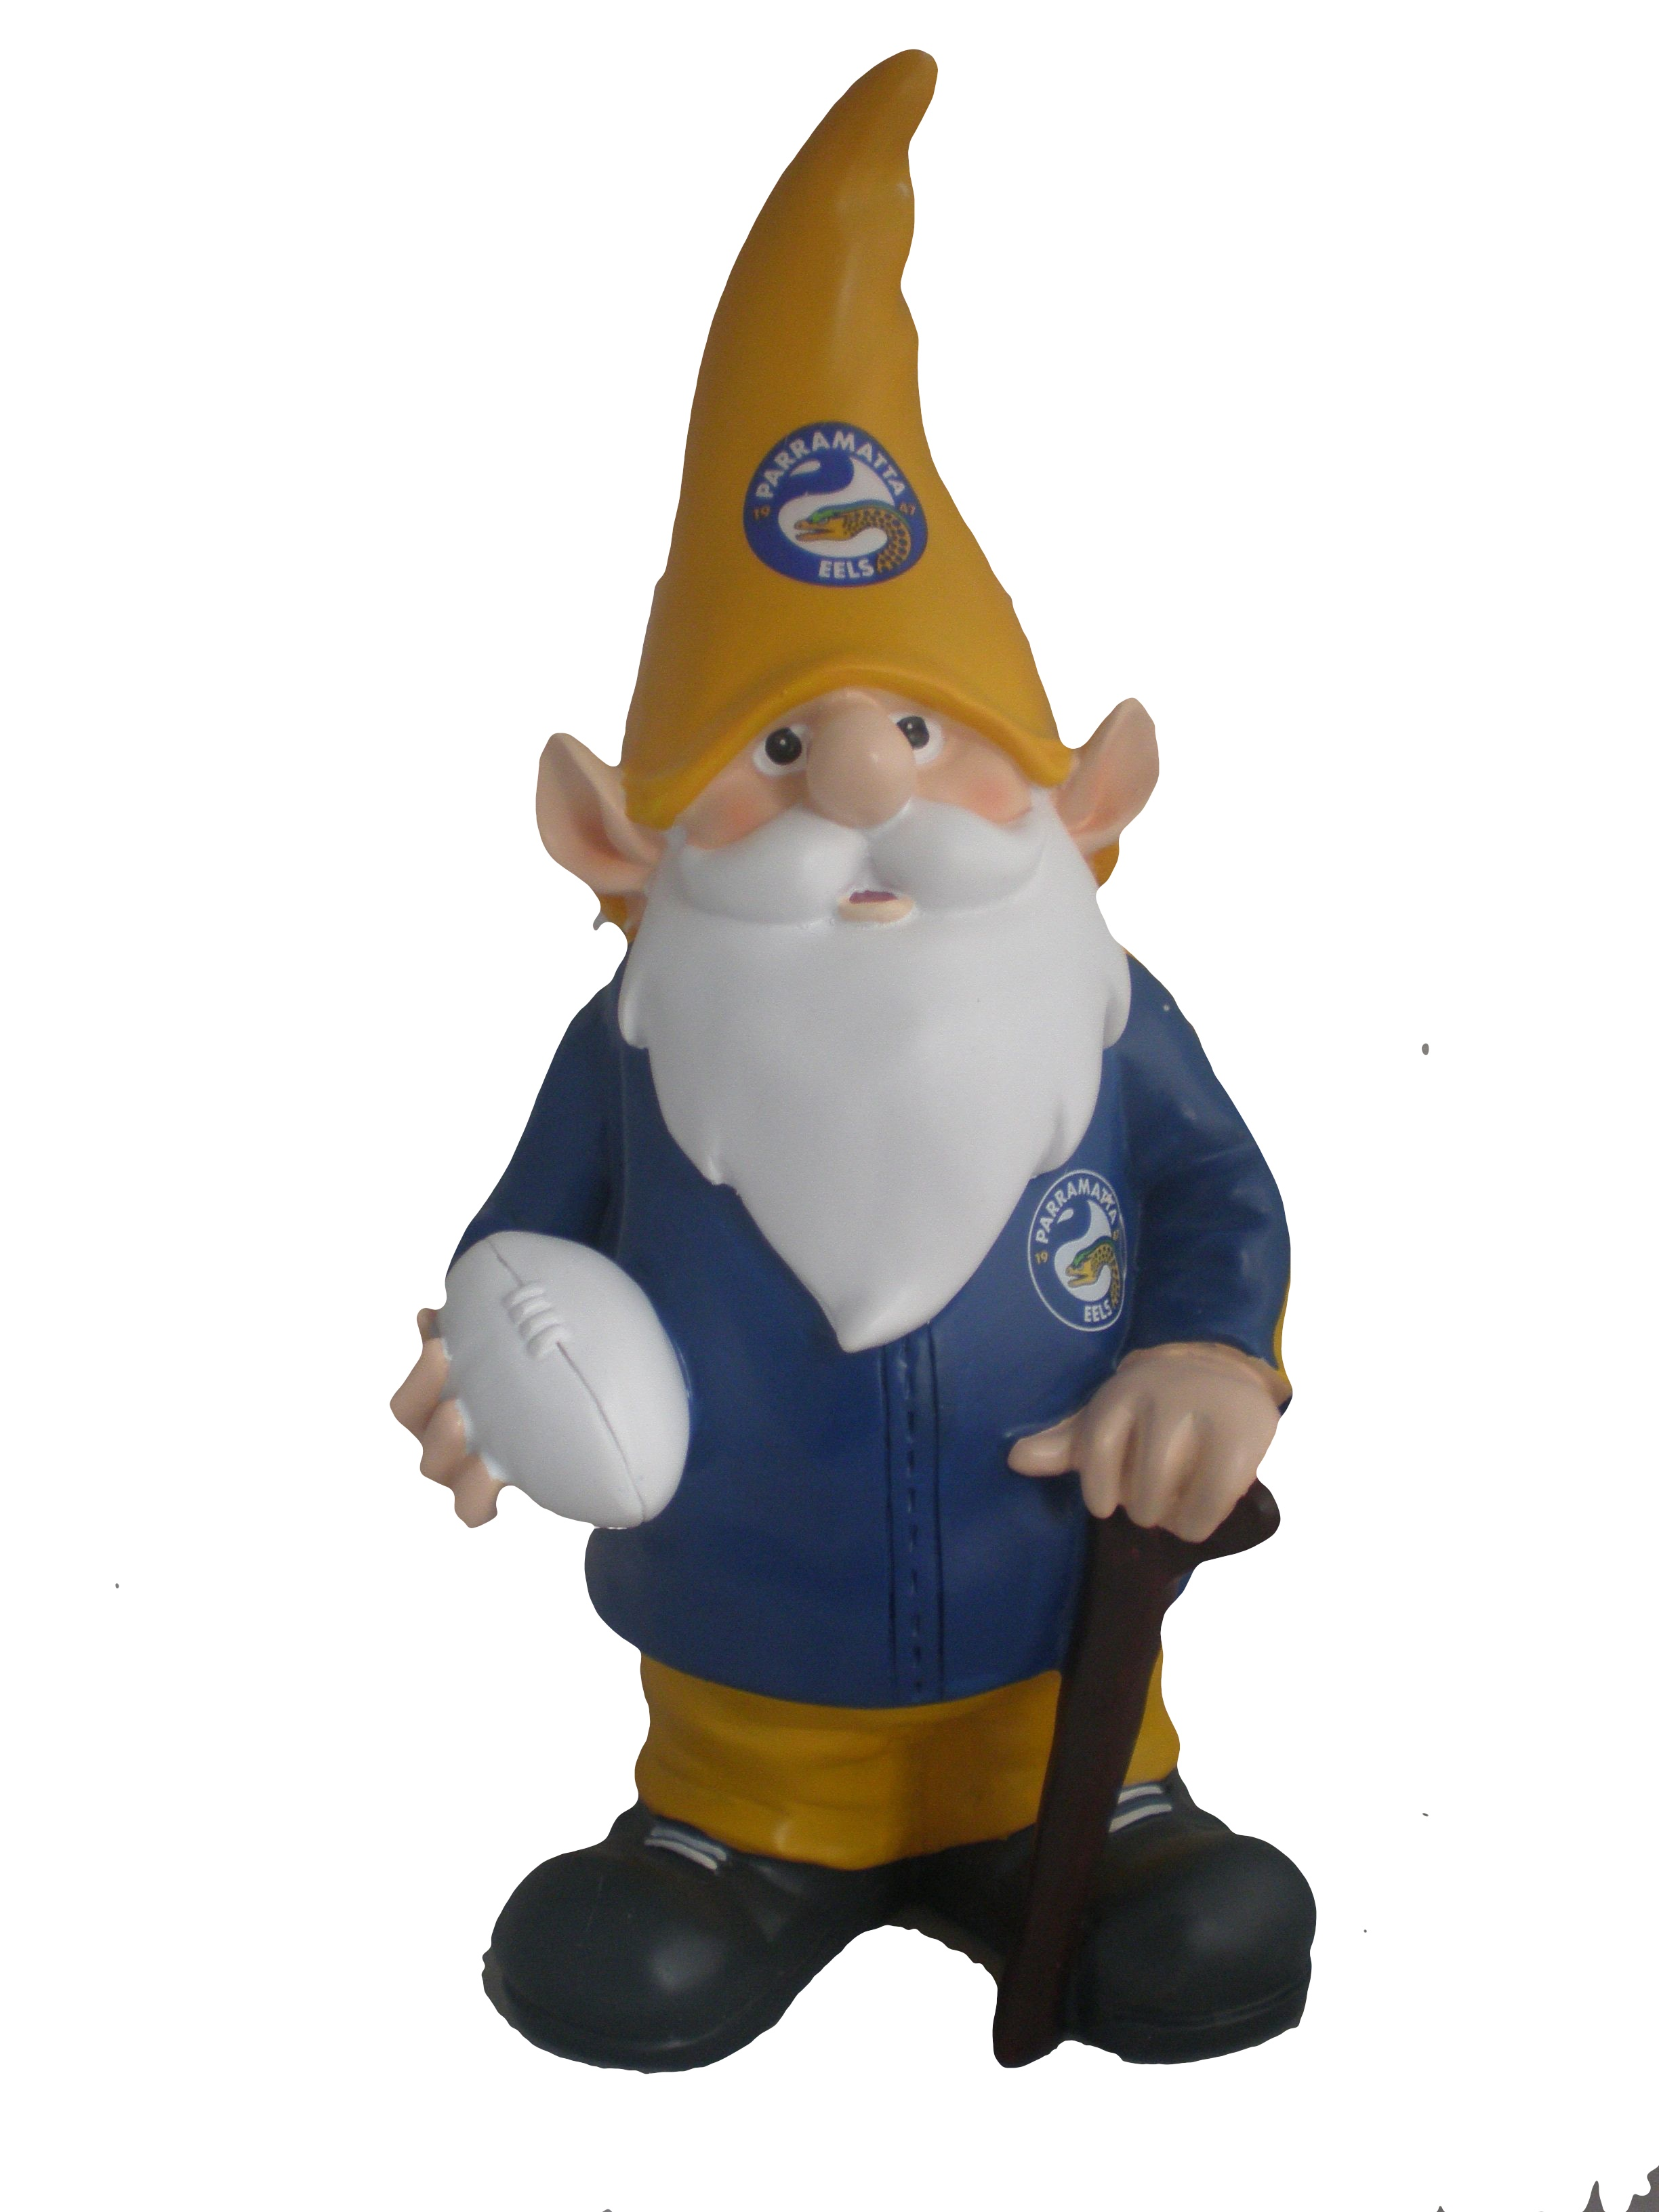 Parramatta Eels Nrl Trackie Wearing Garden Gnome With Walking Cane Ebay